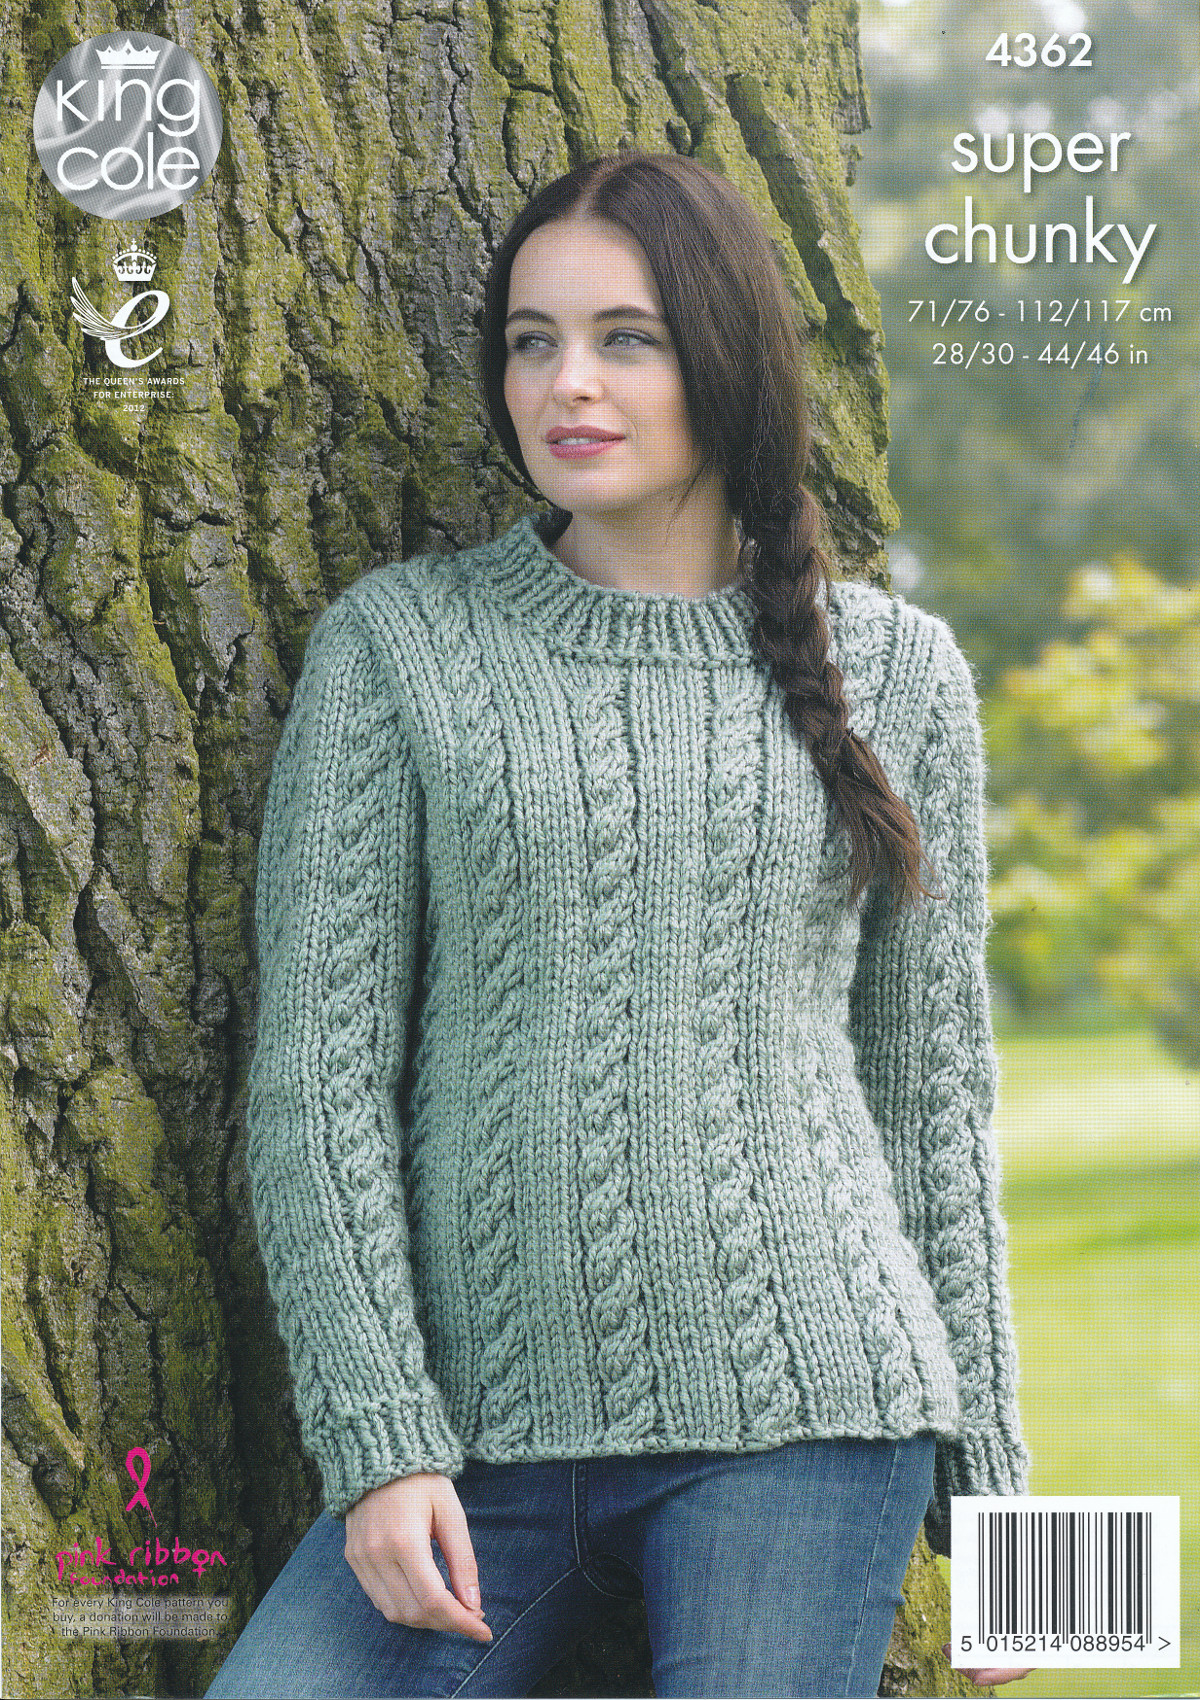 Knit Jumper Pattern Ladies Super Chunky Knitting Pattern King Cole Cable Knit Jumper